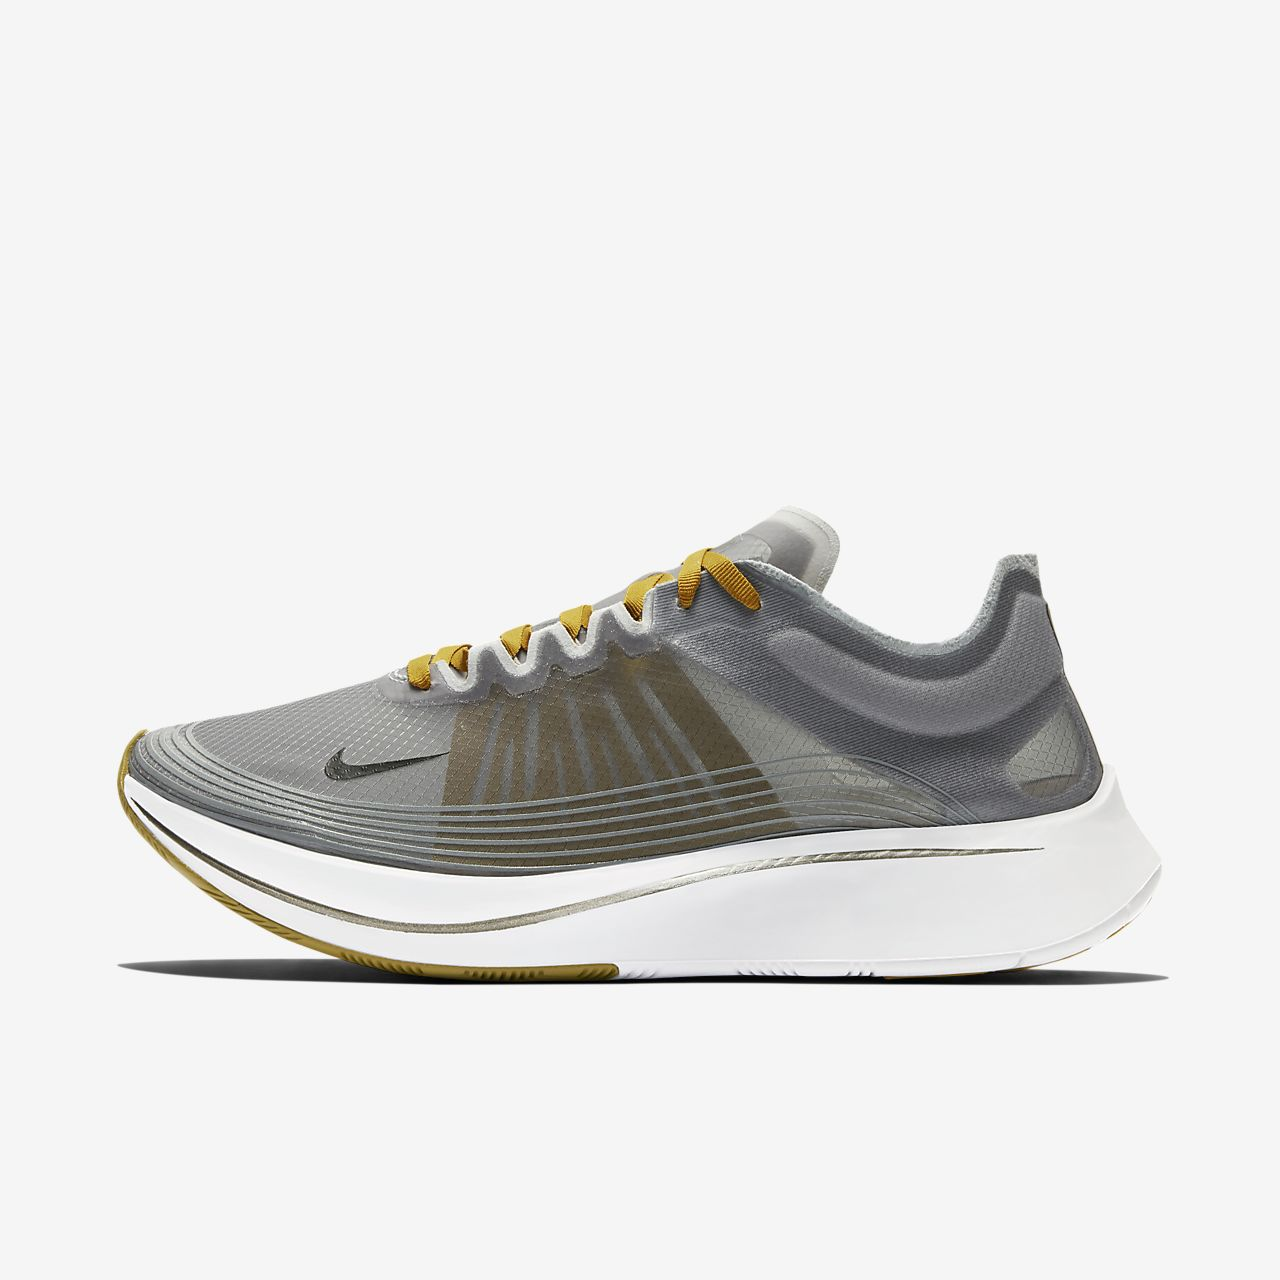 88c4aafb038 Nike Zoom Fly SP Running Shoe. Nike.com IN